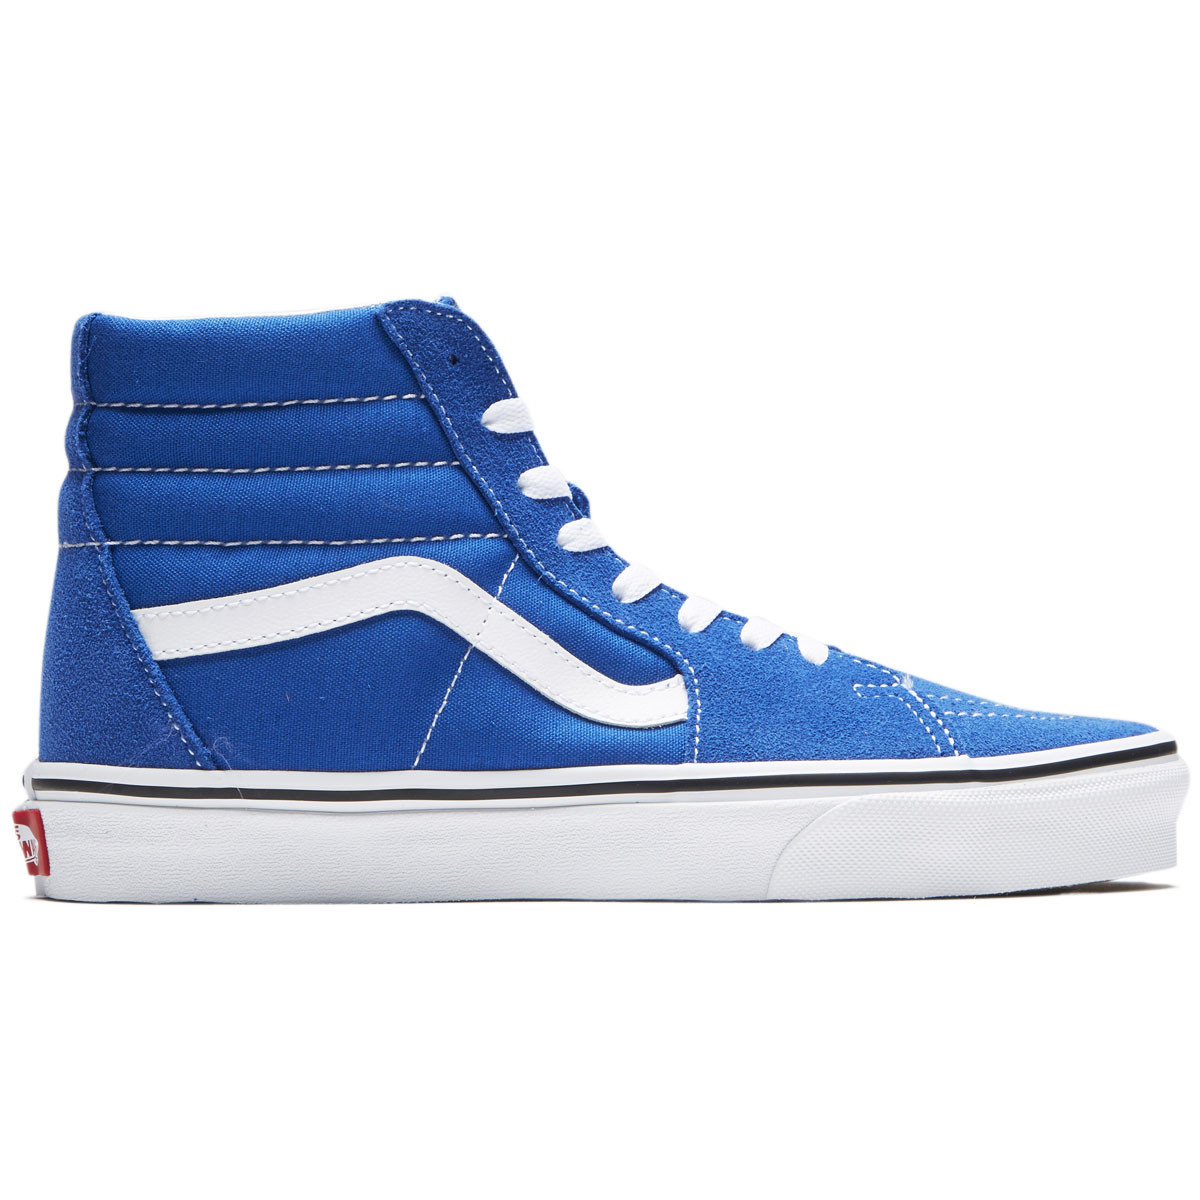 bb5fbf1c77 Vans Unisex Sk8-Hi Shoes - Lapis Blue True White - 4.5